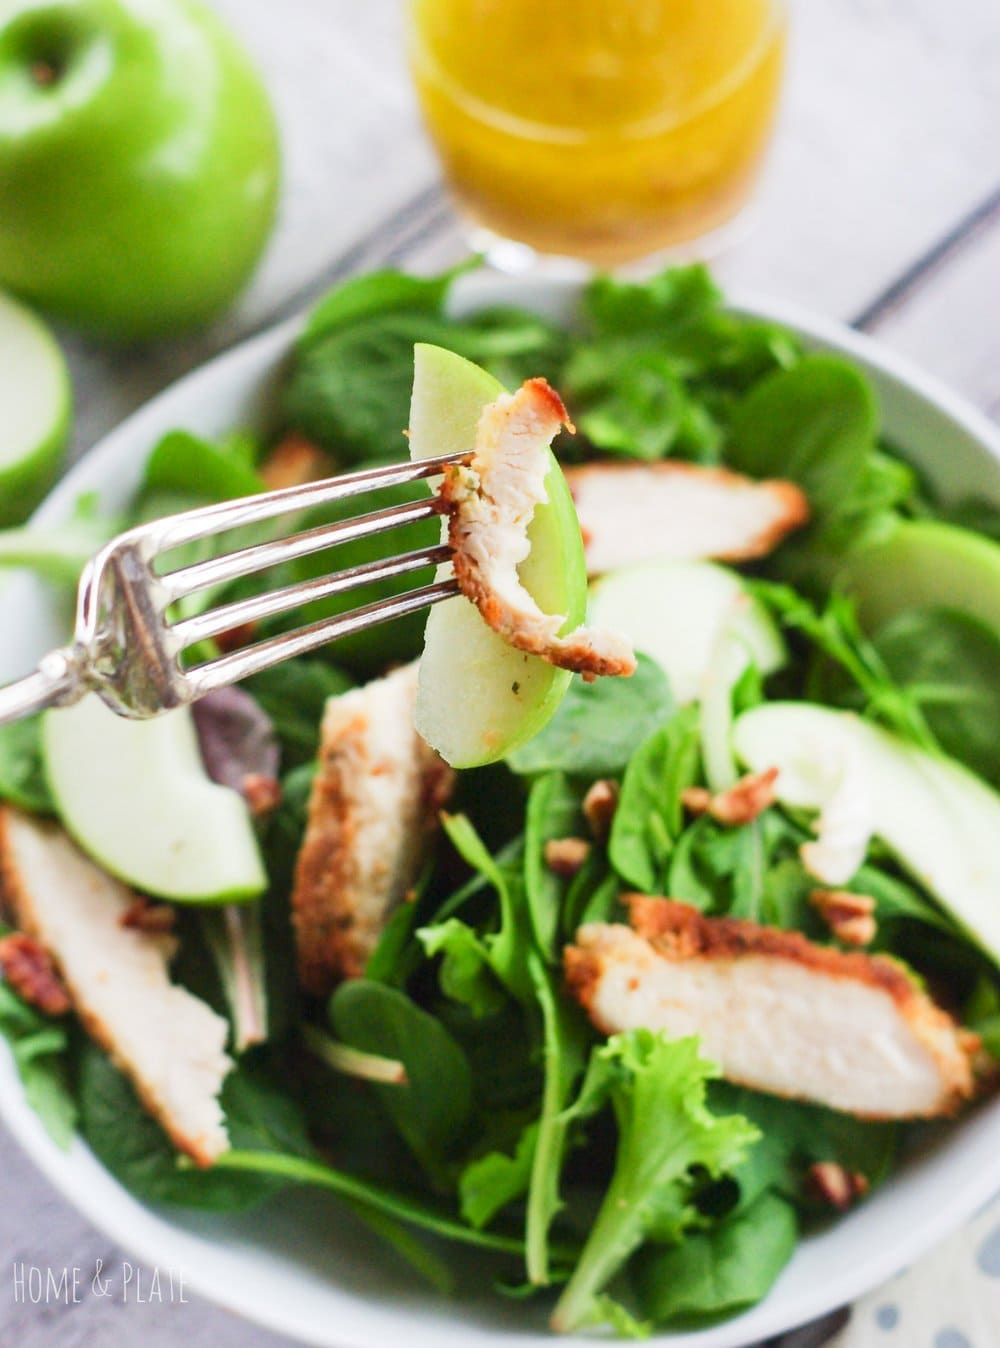 Granny Smith Apple Pecan Chicken Salad | www.homeandplate.com | Tart Granny Smith apples, meaty pecans and breaded chunks of chicken are topped with a homemade honey orange balsamic vinaigrette.